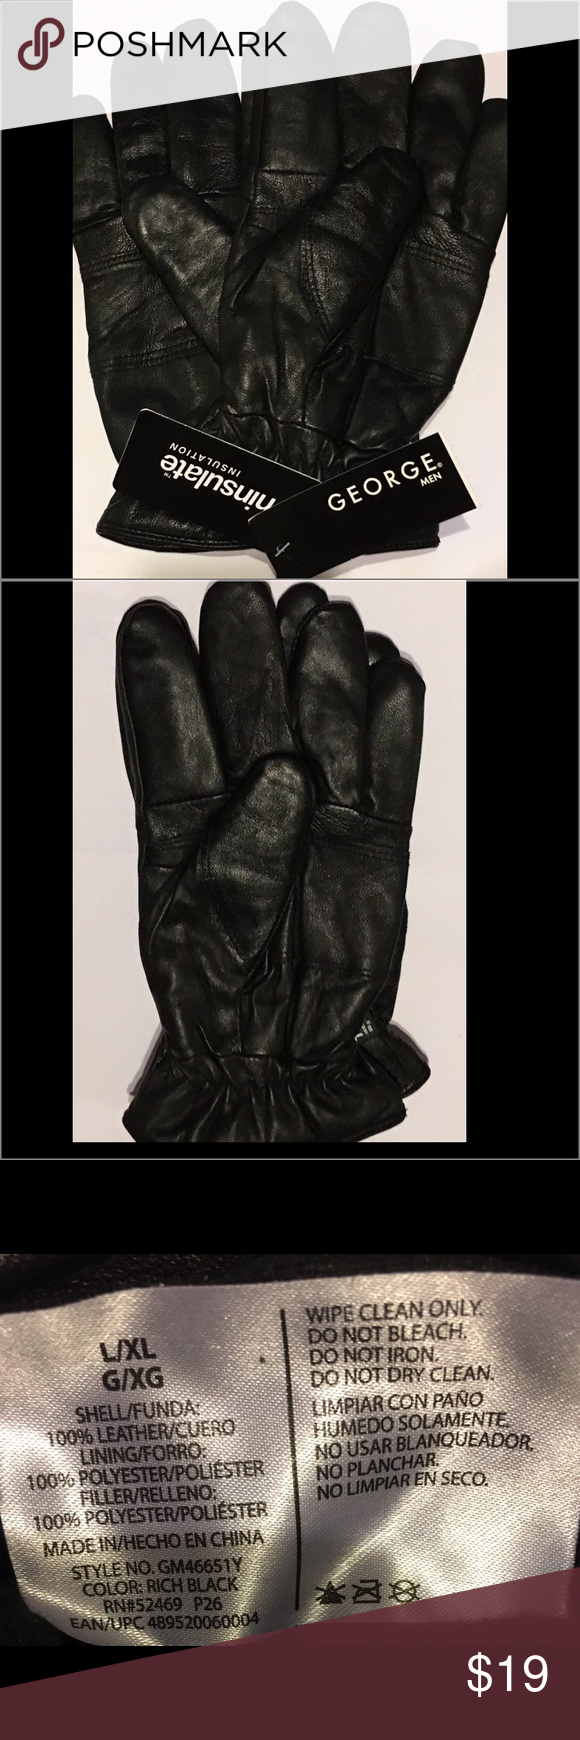 Mens black leather gloves xl - Thinsulste Men S Black Leather Gloves L Xl Nwt Accessories Leather Gloves And Warm